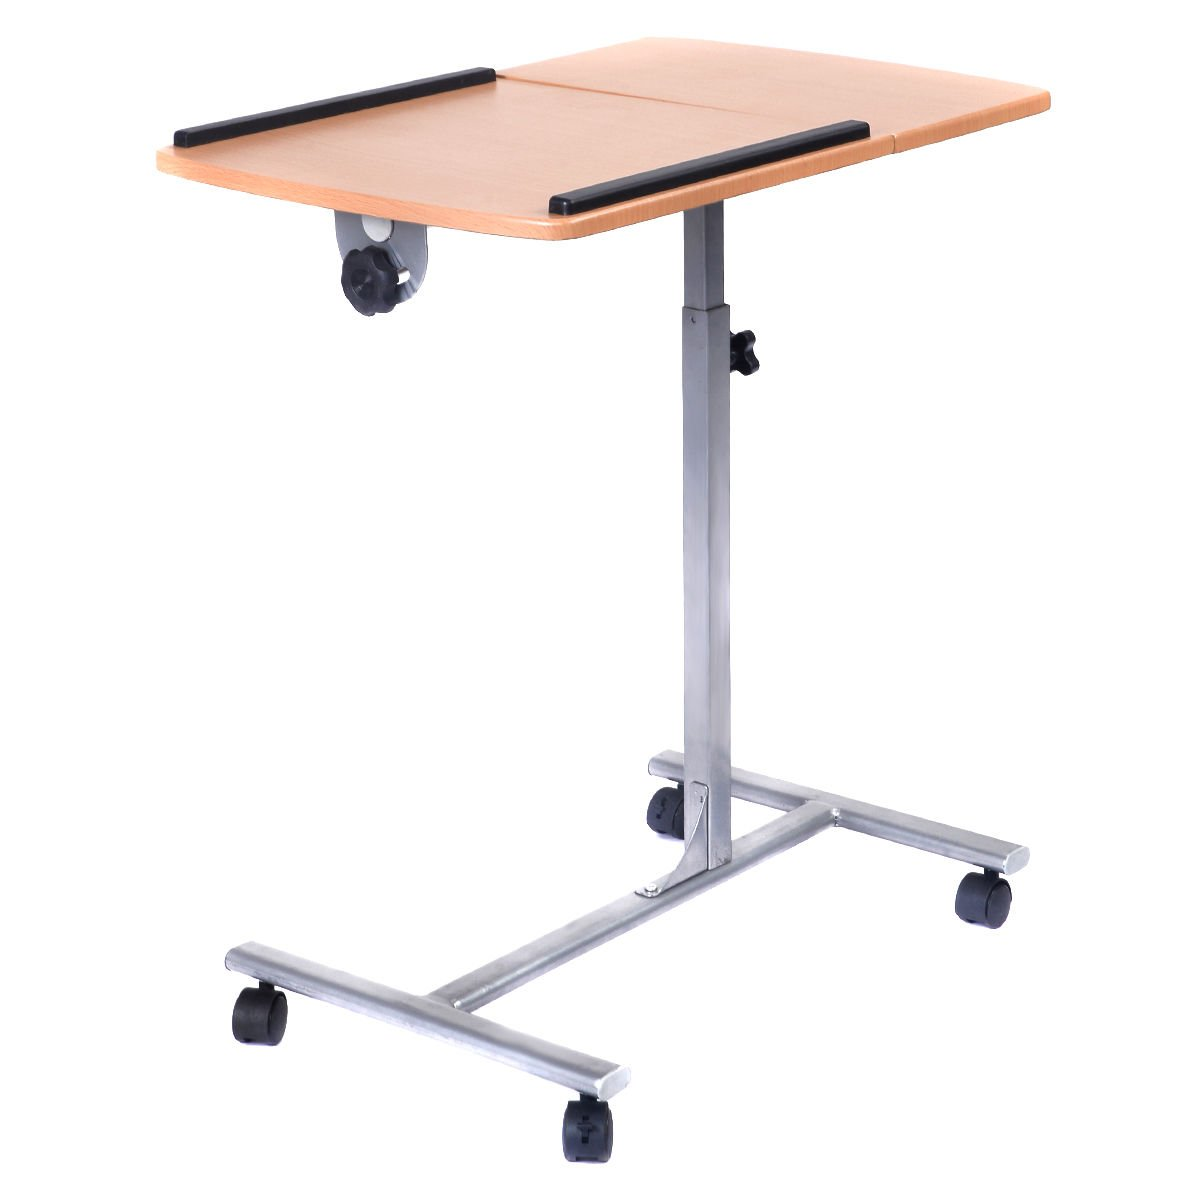 office tables on wheels. Amazon.com : Adjustable Laptop Notebook Desk Table Stand Holder Swivel Home Office Wheels Products Tables On O